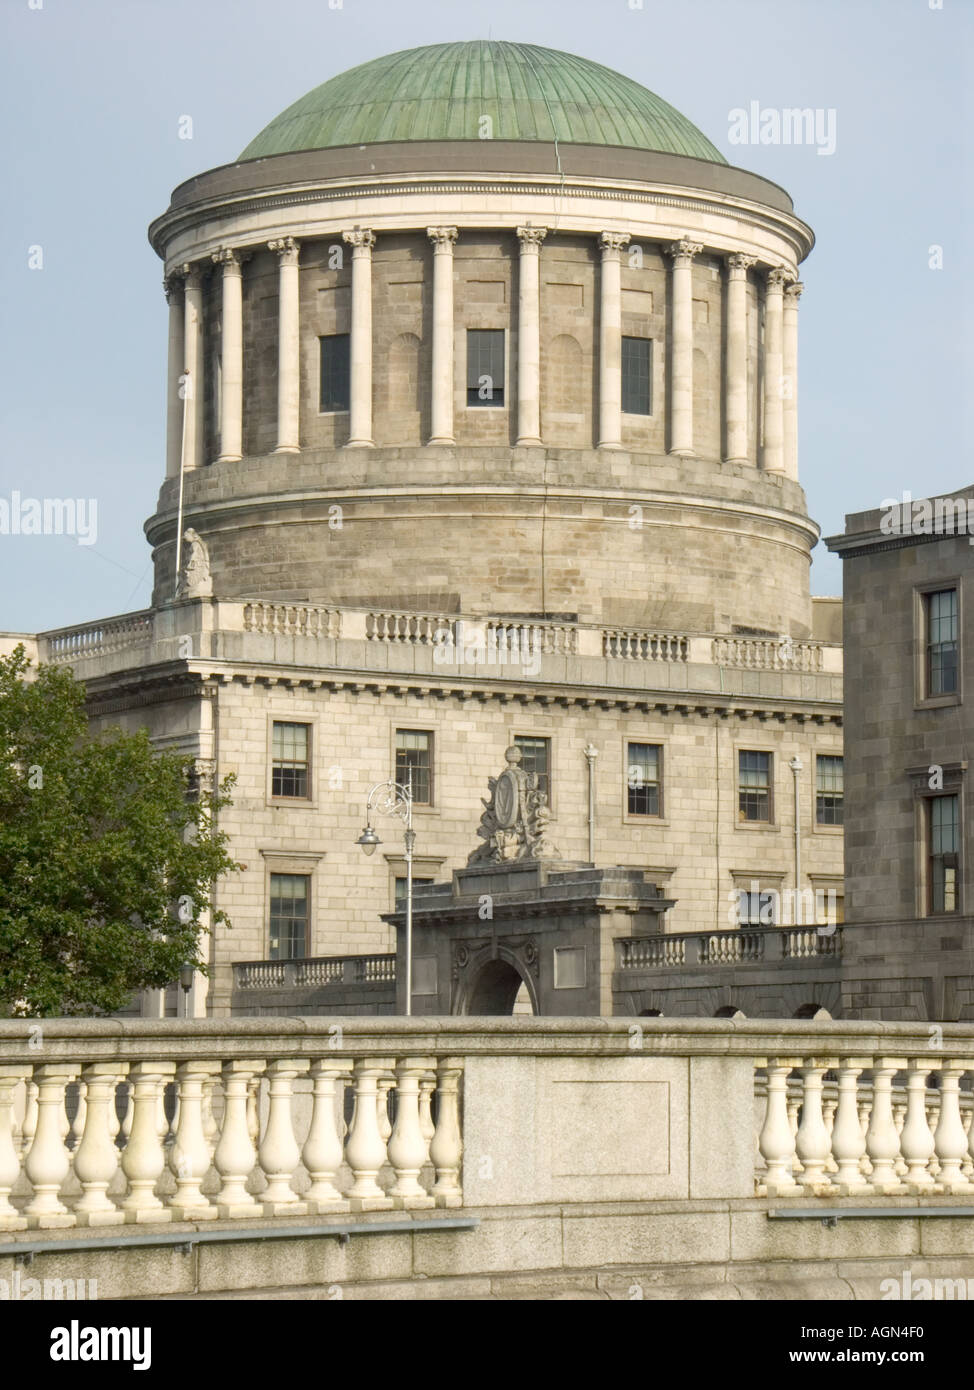 DUBLIN S judiciary is centred around the distinctive dome of the Four Courts building right at the Liffey designed by James Gan - Stock Image